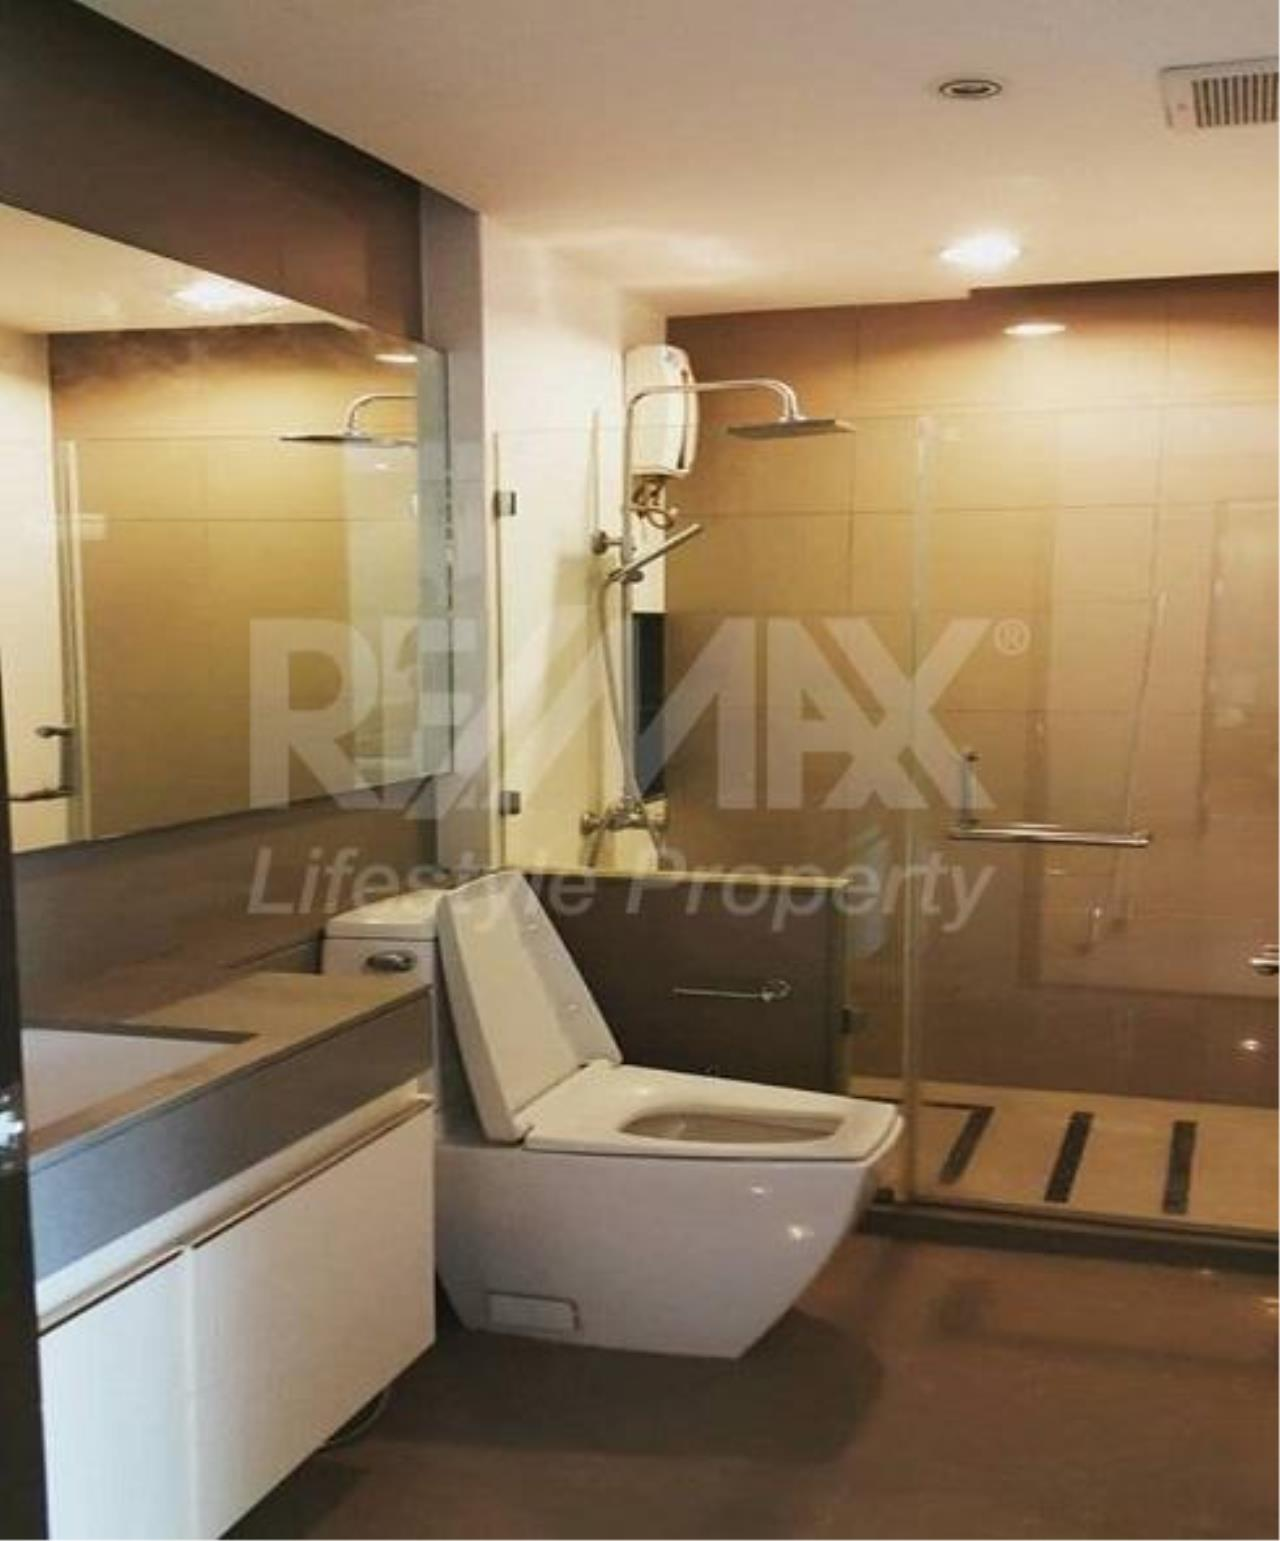 RE/MAX LifeStyle Property Agency's The Address Pathumwan 6